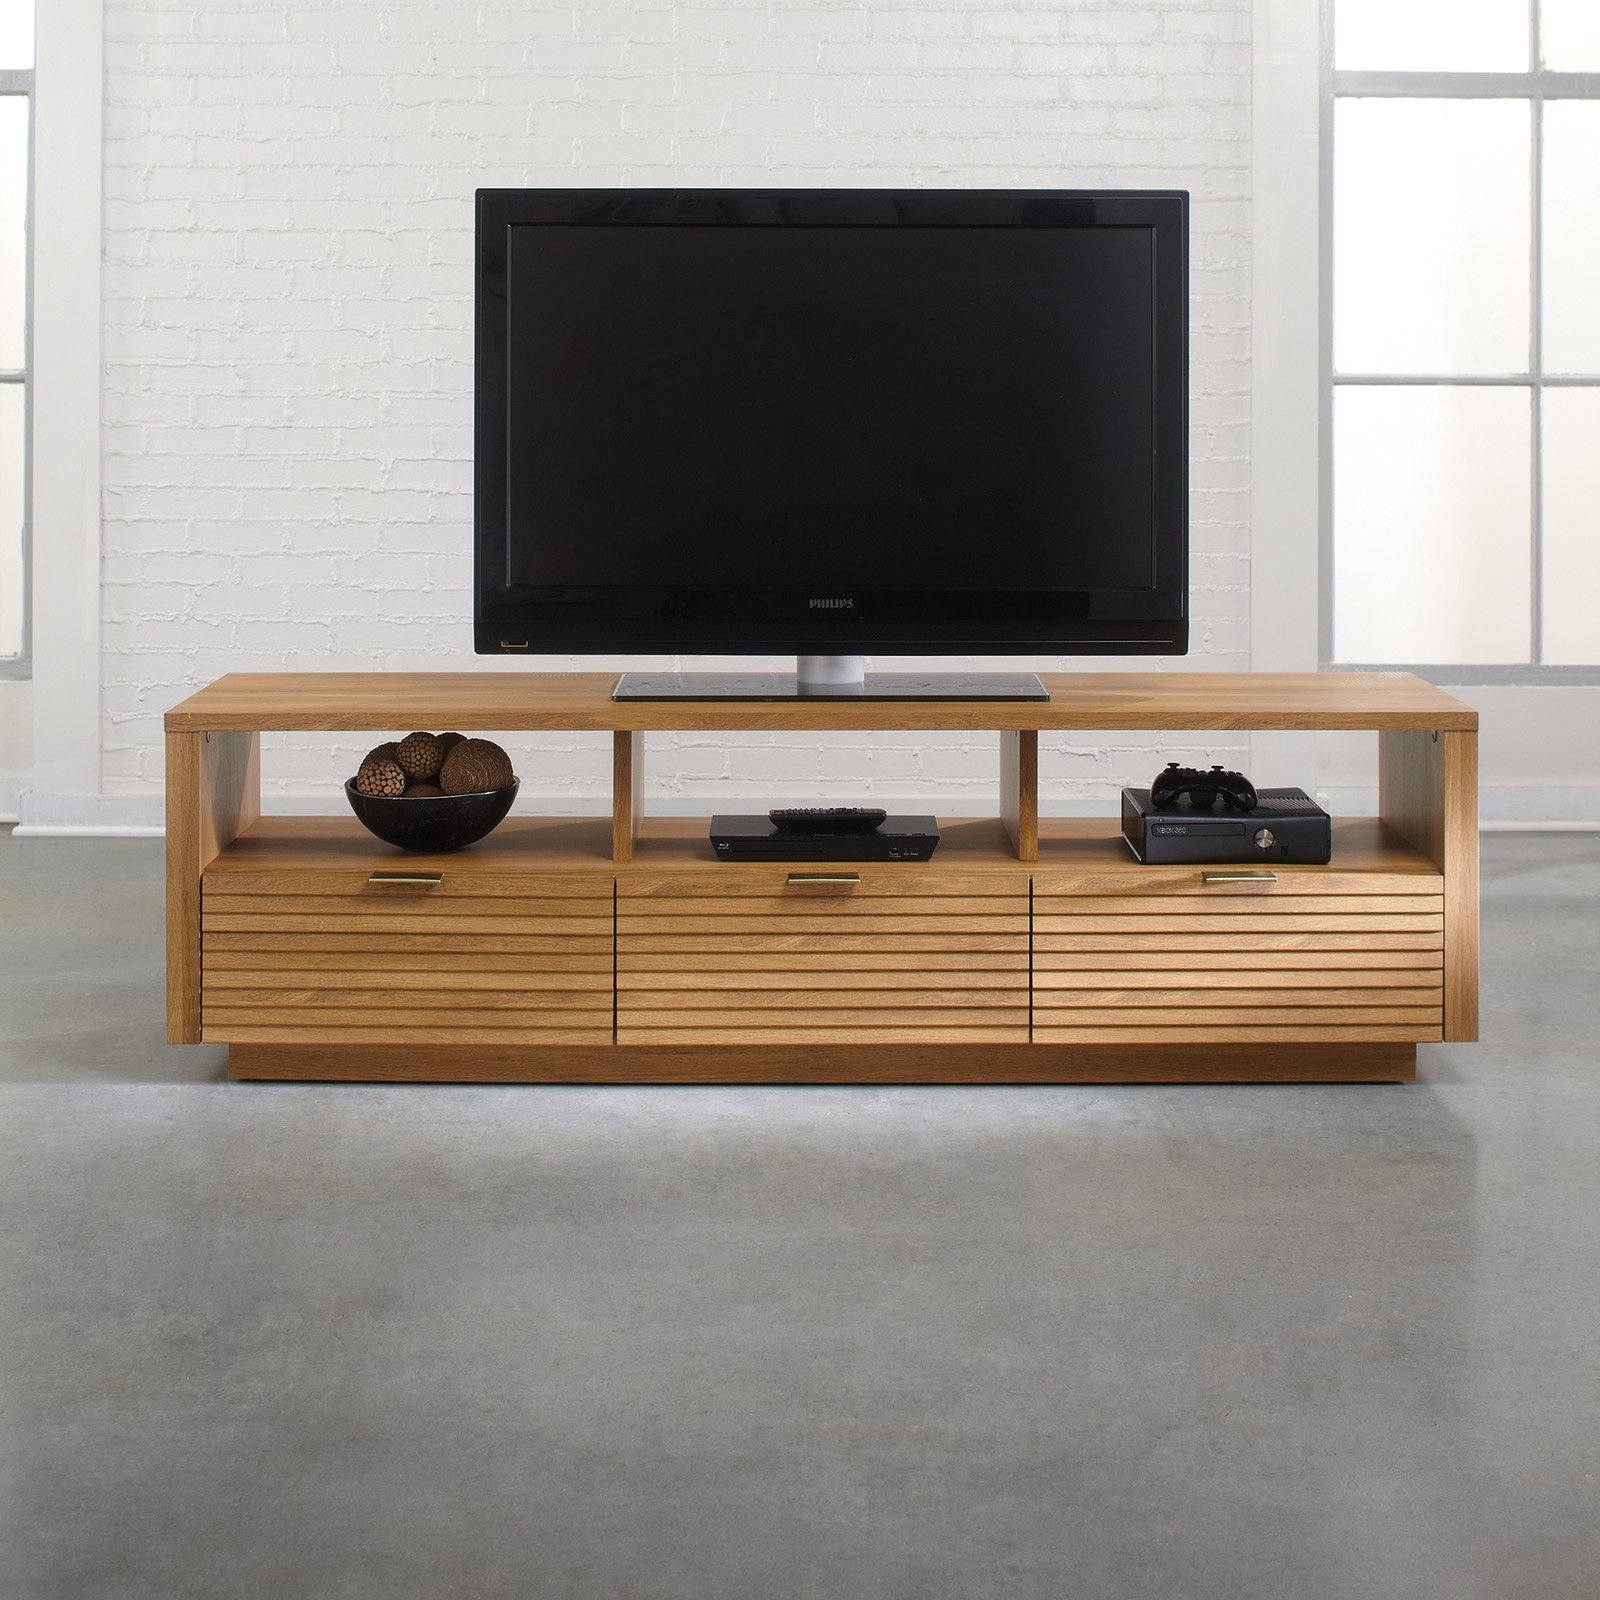 Unique Sauder Soft Modern Entertainment Credenza - Pale Oak - Walmart.com GX03